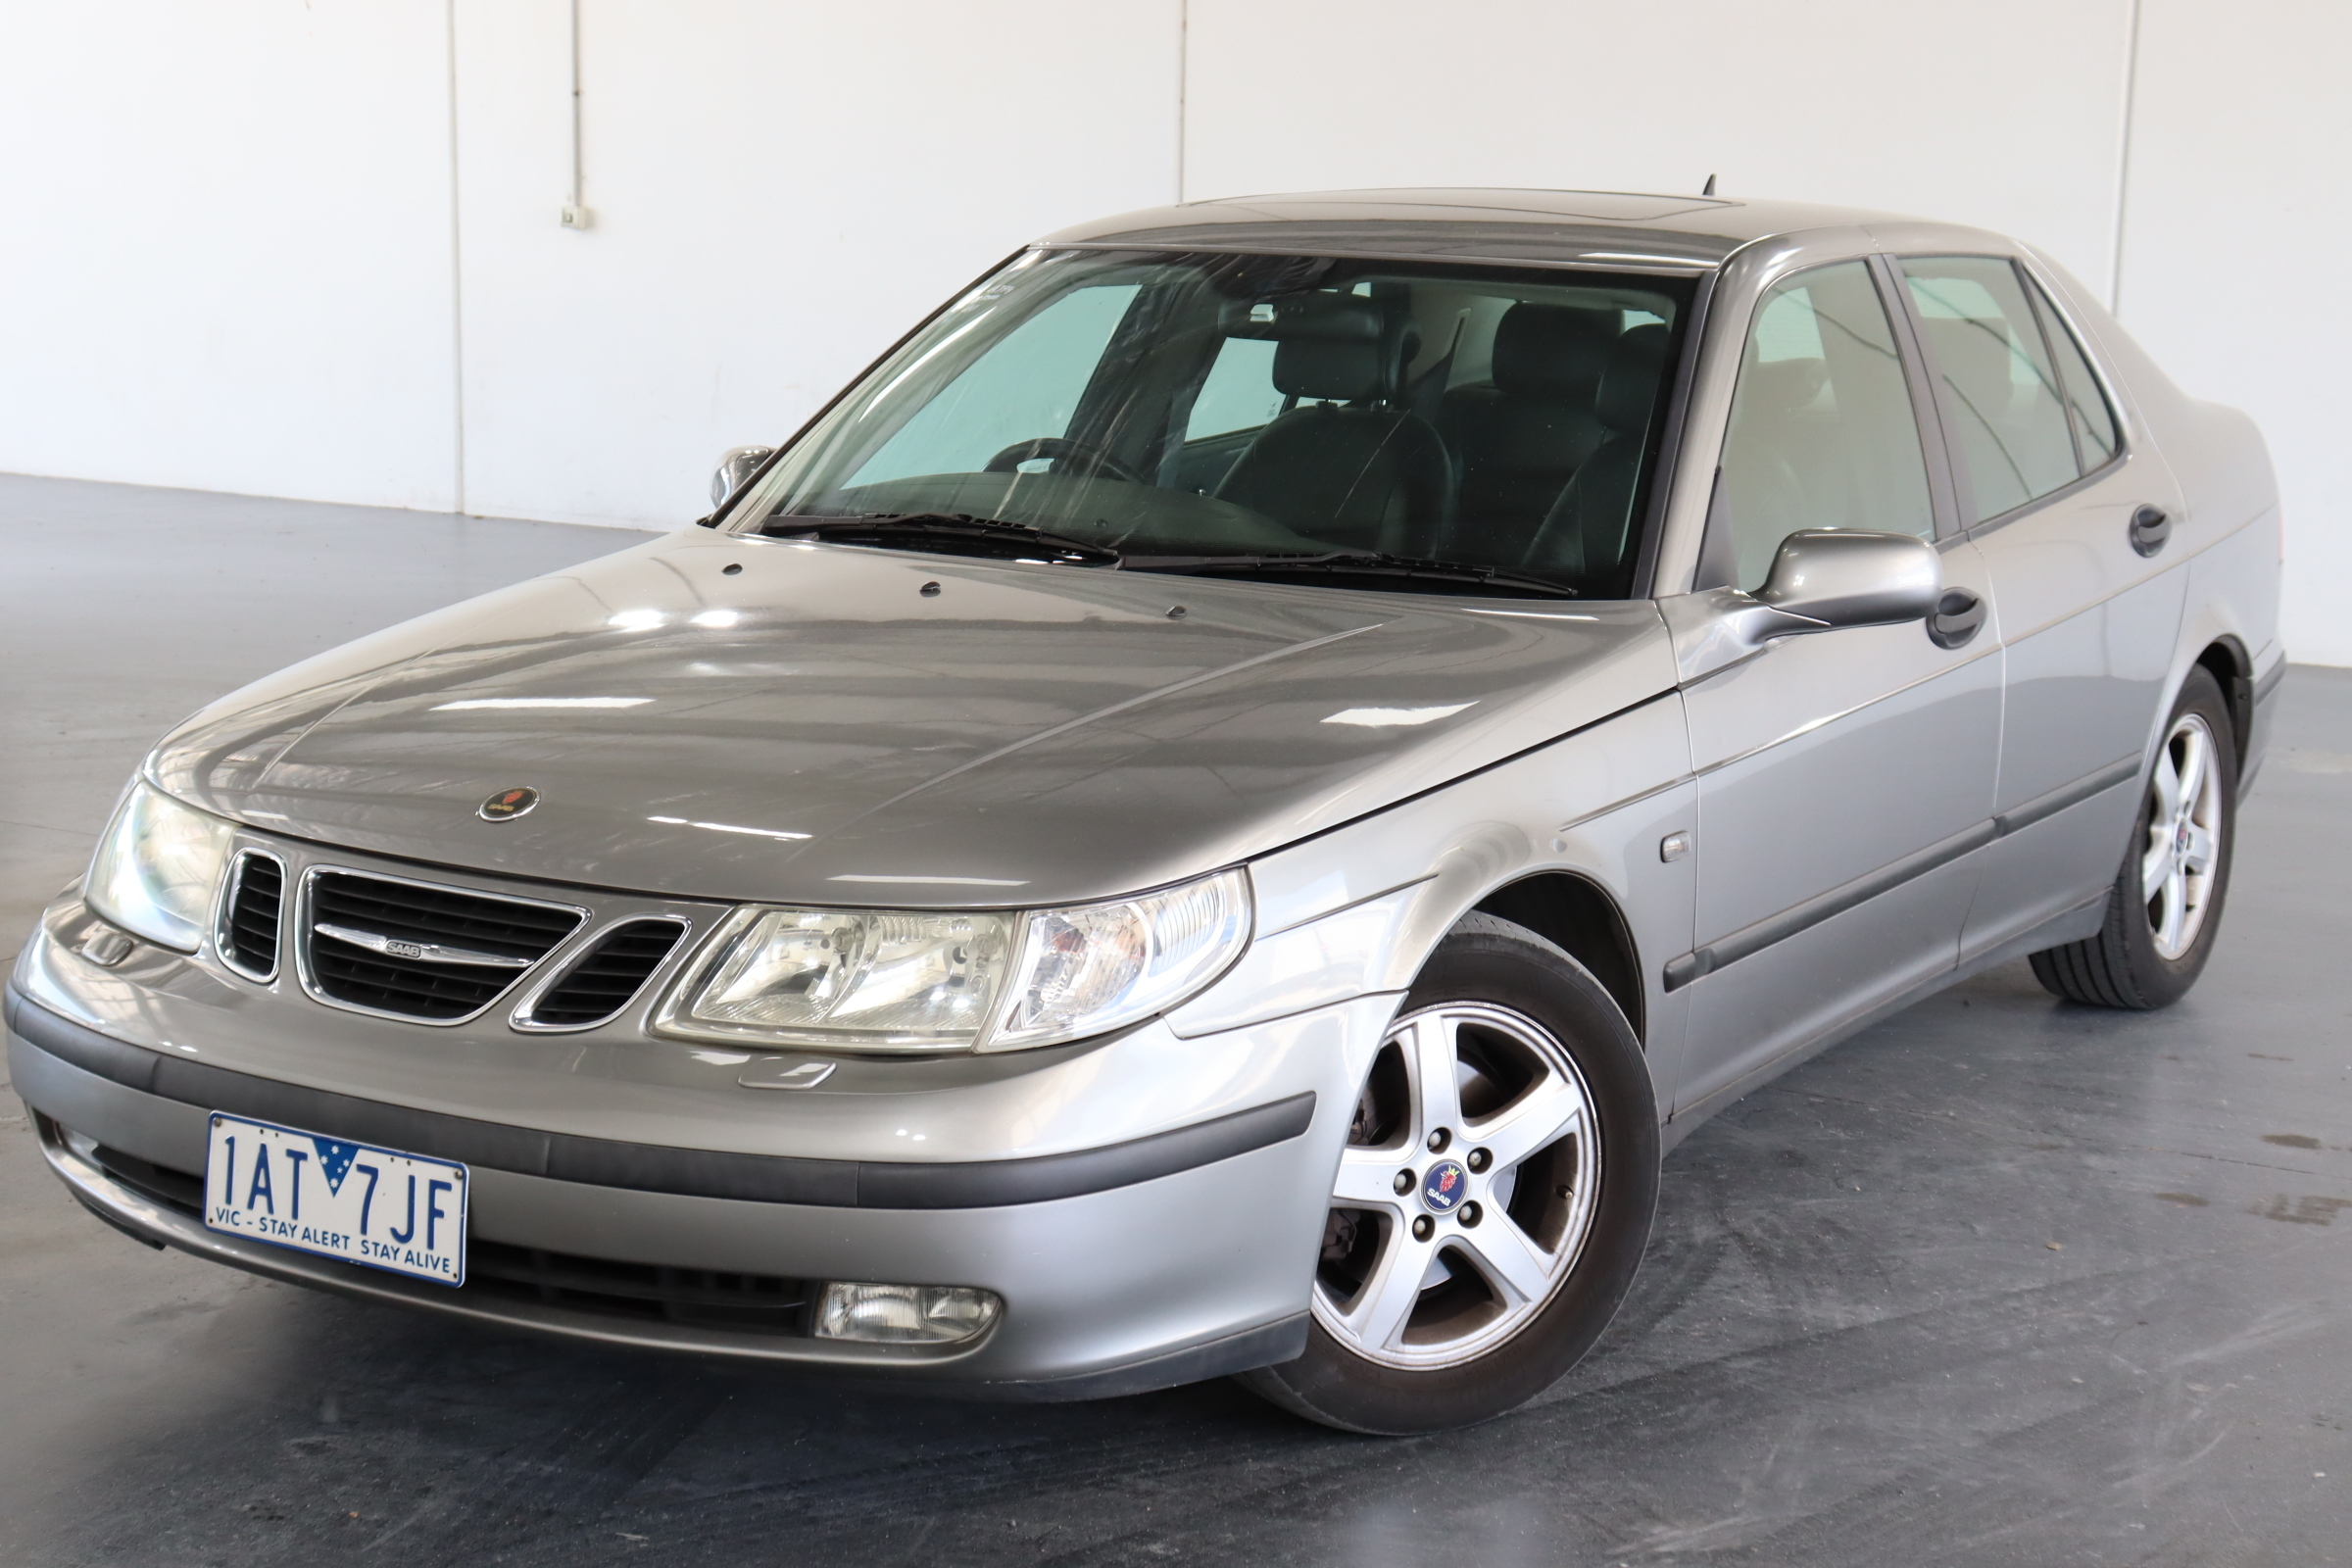 2003 Saab 9-5 ARC Automatic Sedan